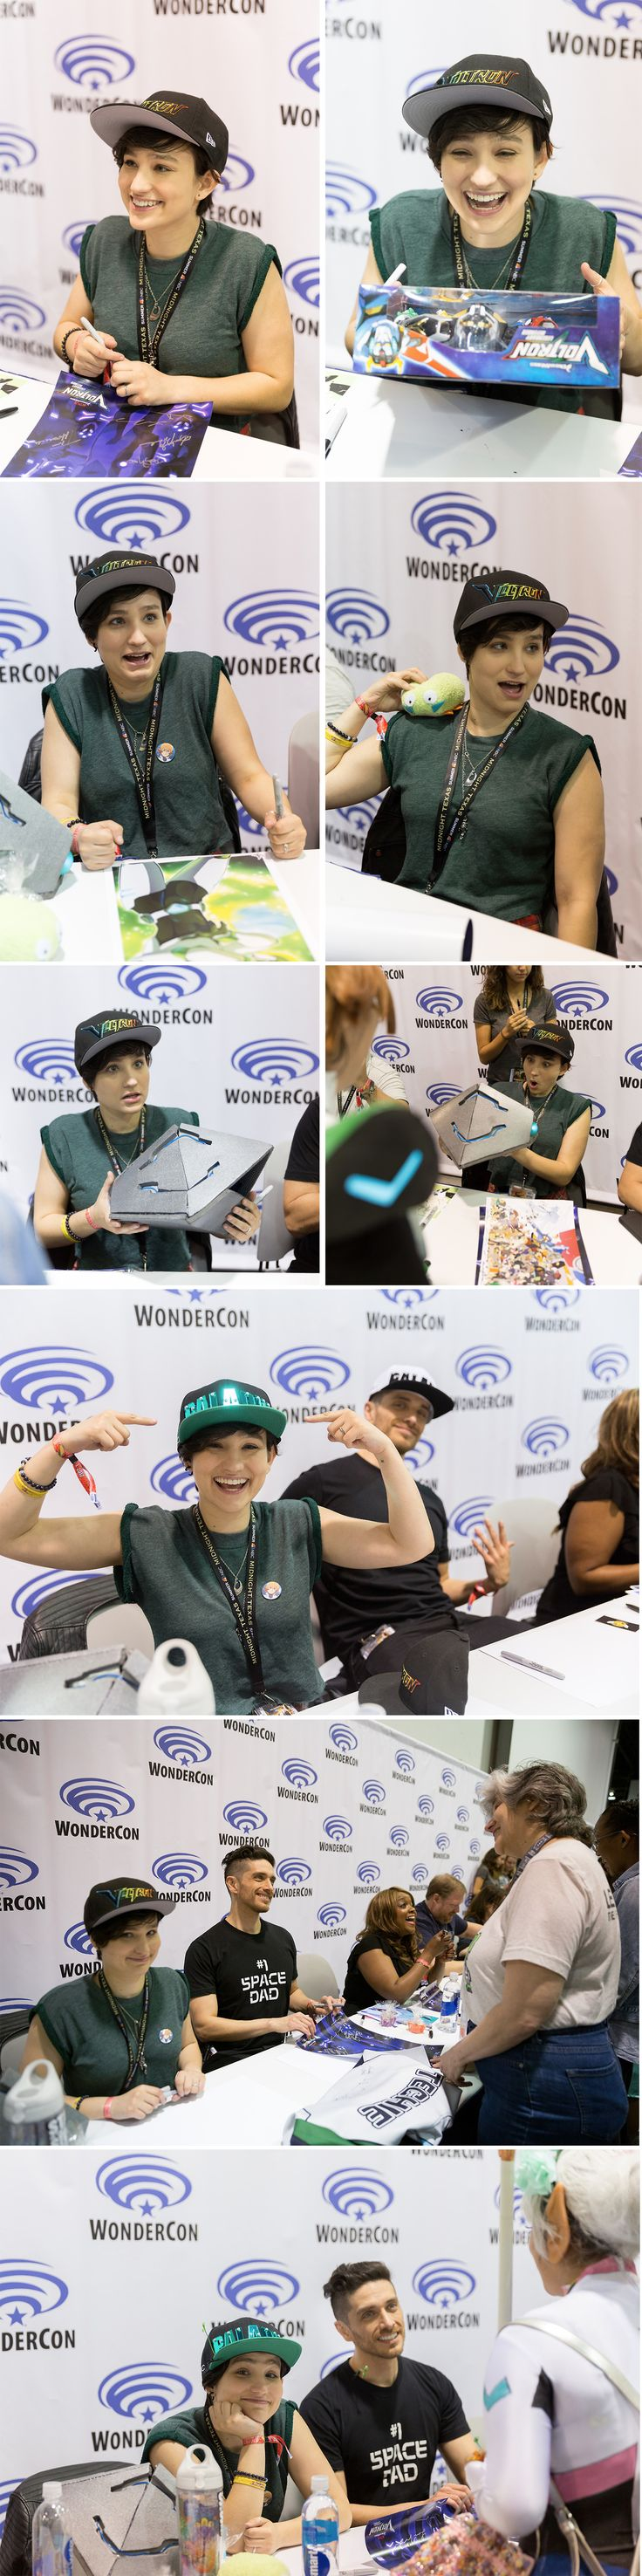 bex taylor-klaus is a gem.  she interacted so genuinely with each fan and was SO EXCITED about all the stuff they brought to show/give her! // Bless Bex